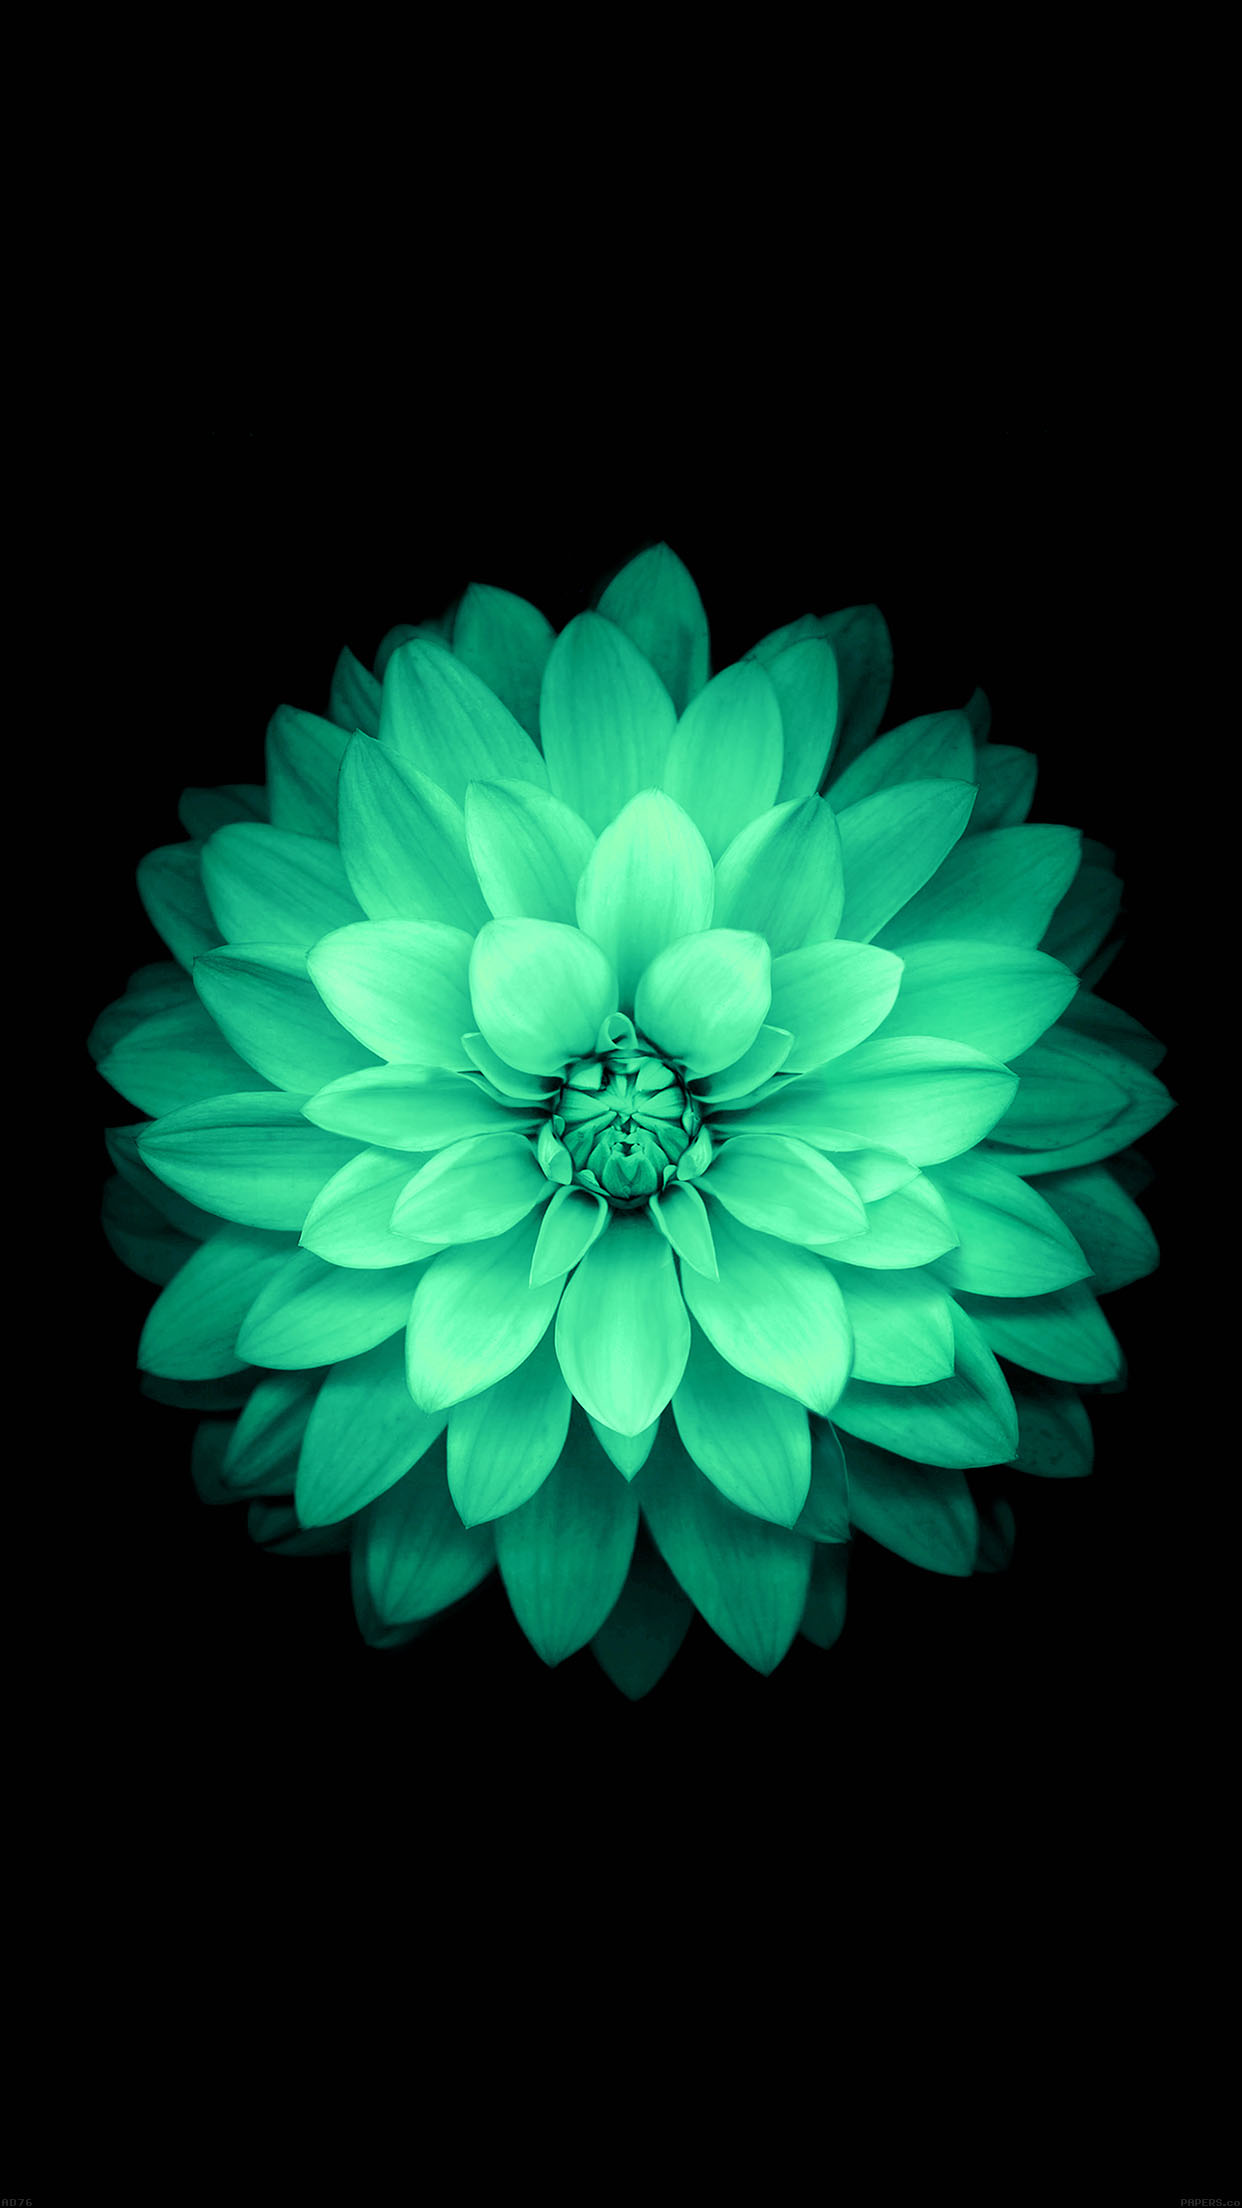 Iphone6papers Ad76 Apple Green Lotus Iphone6 Plus Ios8 Flower